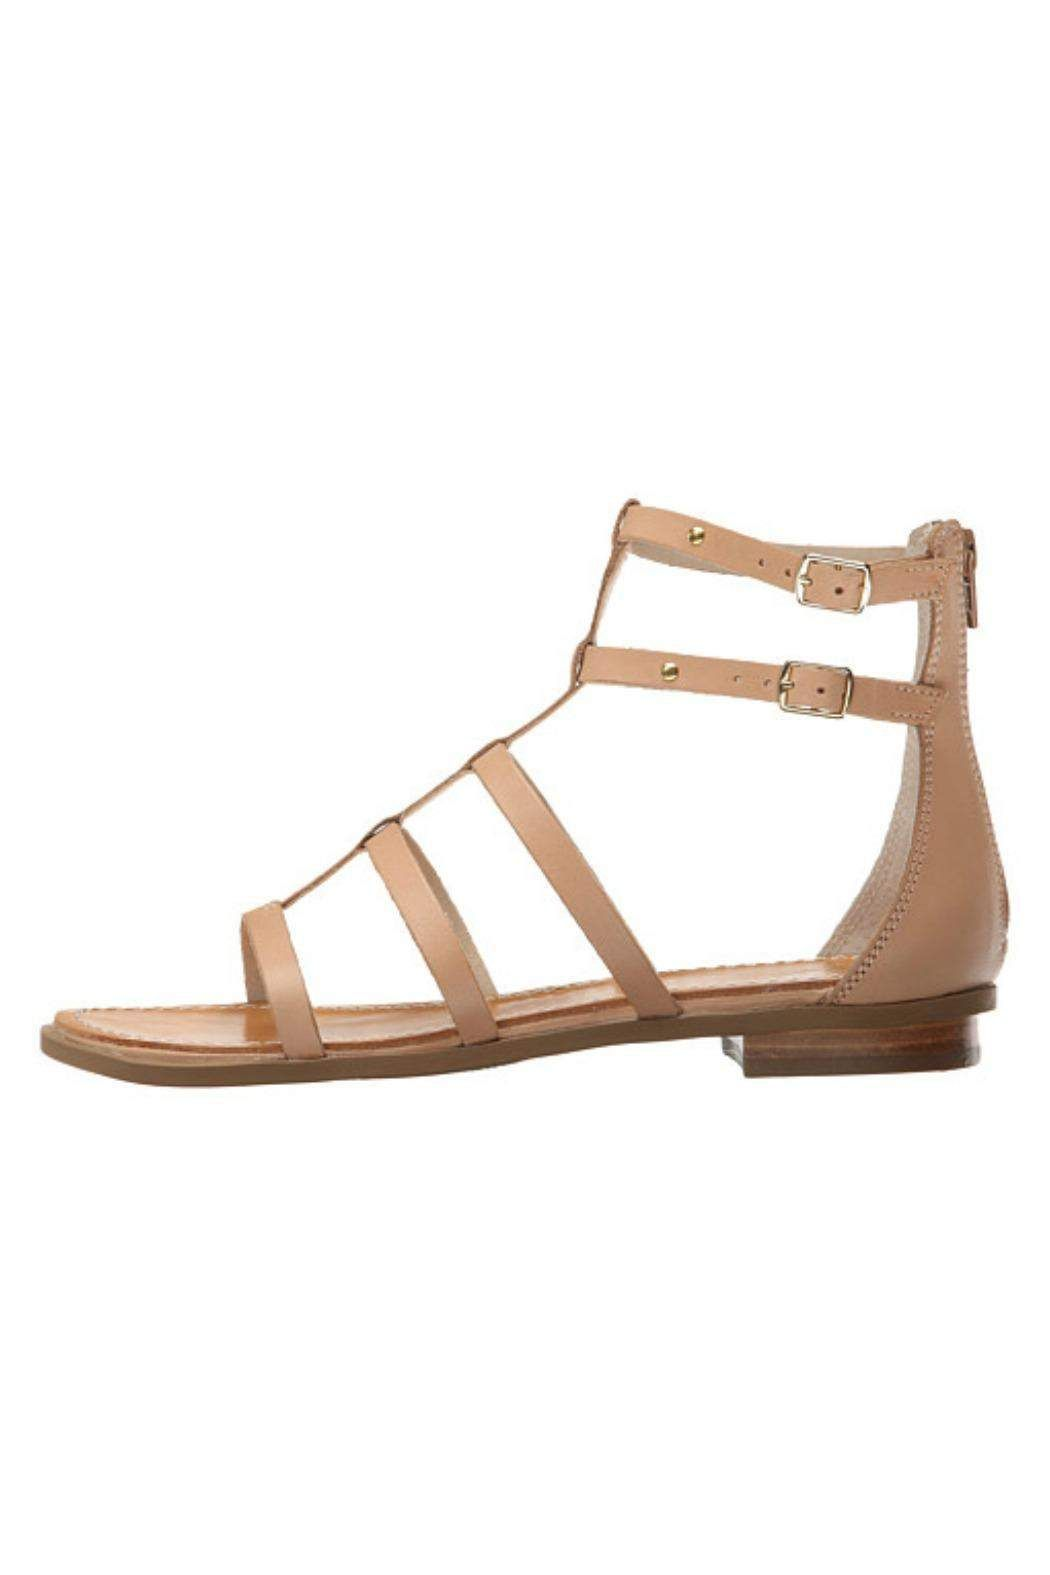 557ef37a9355 Back zipper closure. Double ankle straps with adjustable buckles. Caged  open toe silhouette.